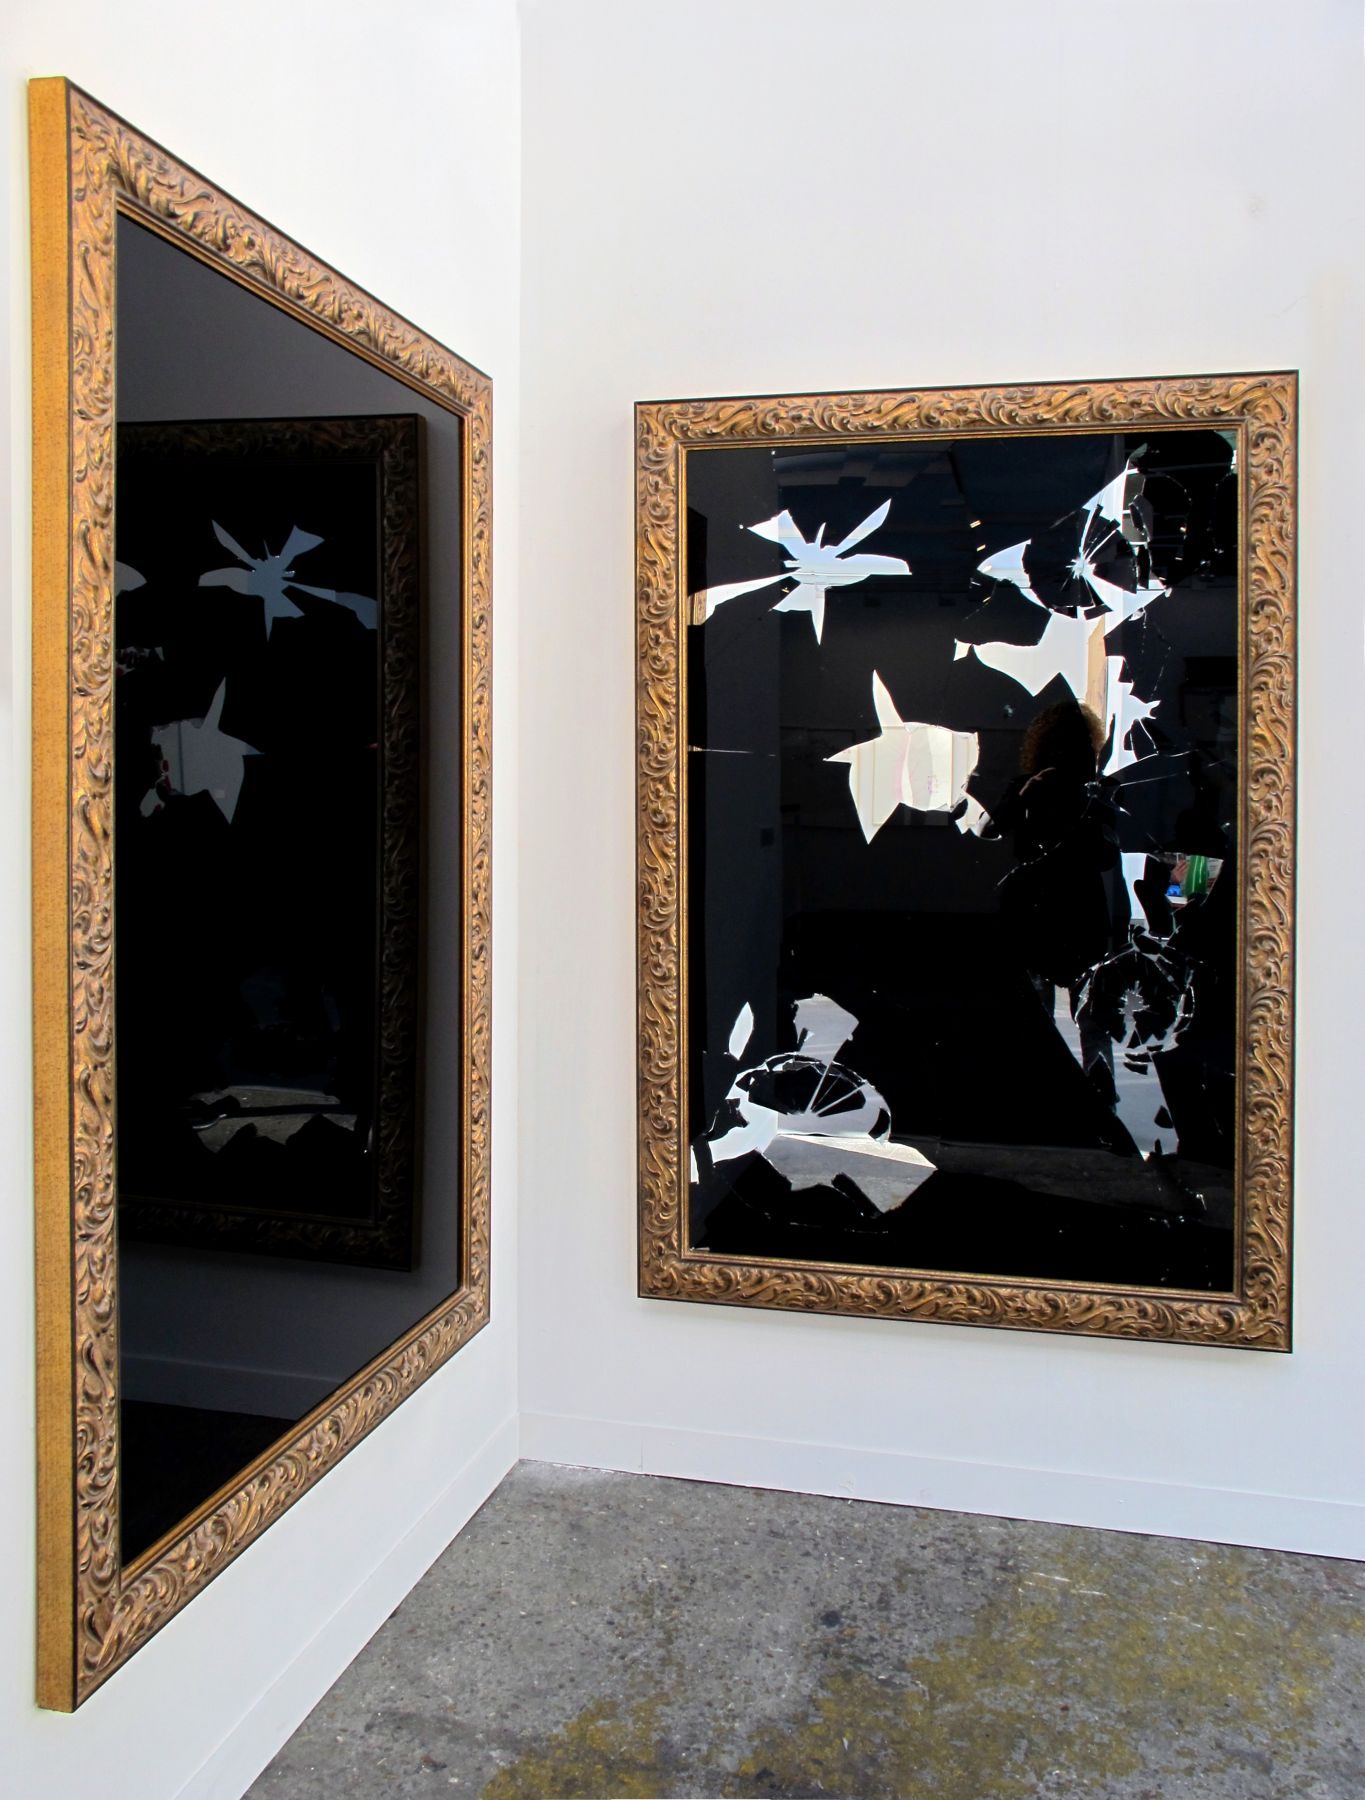 Two Less One Black, 2011, Black and silver mirror, gilded wood